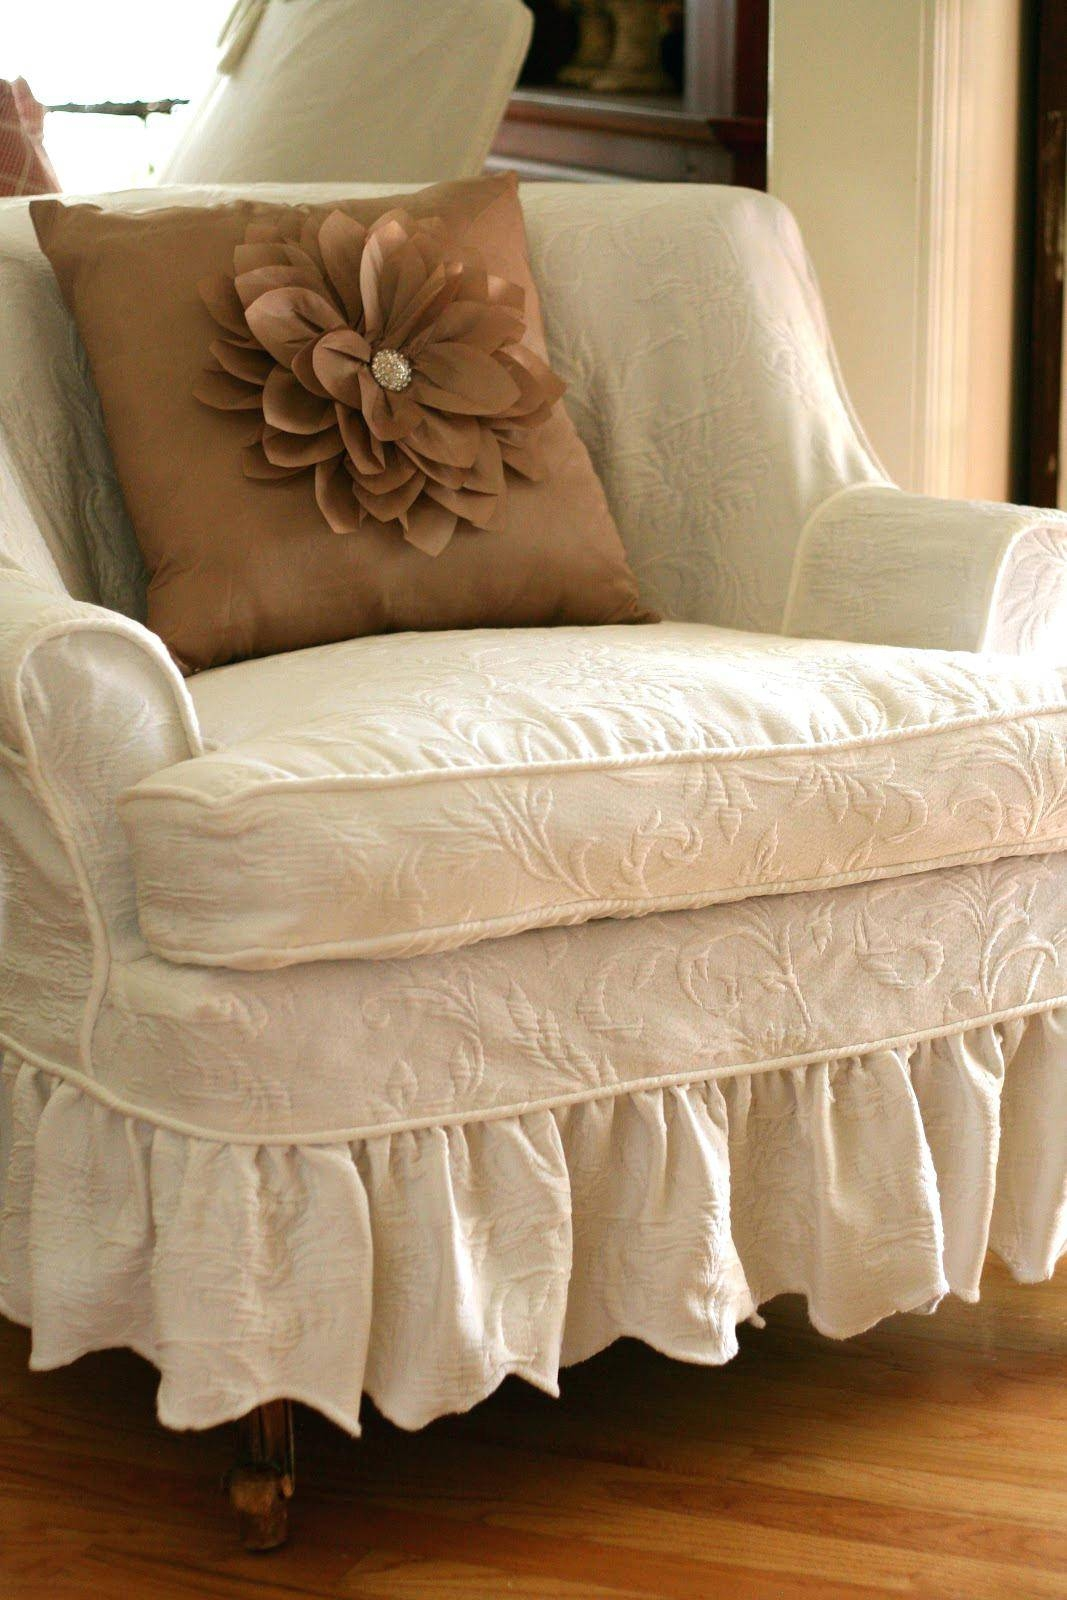 Shabby Chic Slipcovers For Wing Chairs Sale Target #2030 Gallery Throughout Shabby Chic Slipcovers (View 10 of 15)